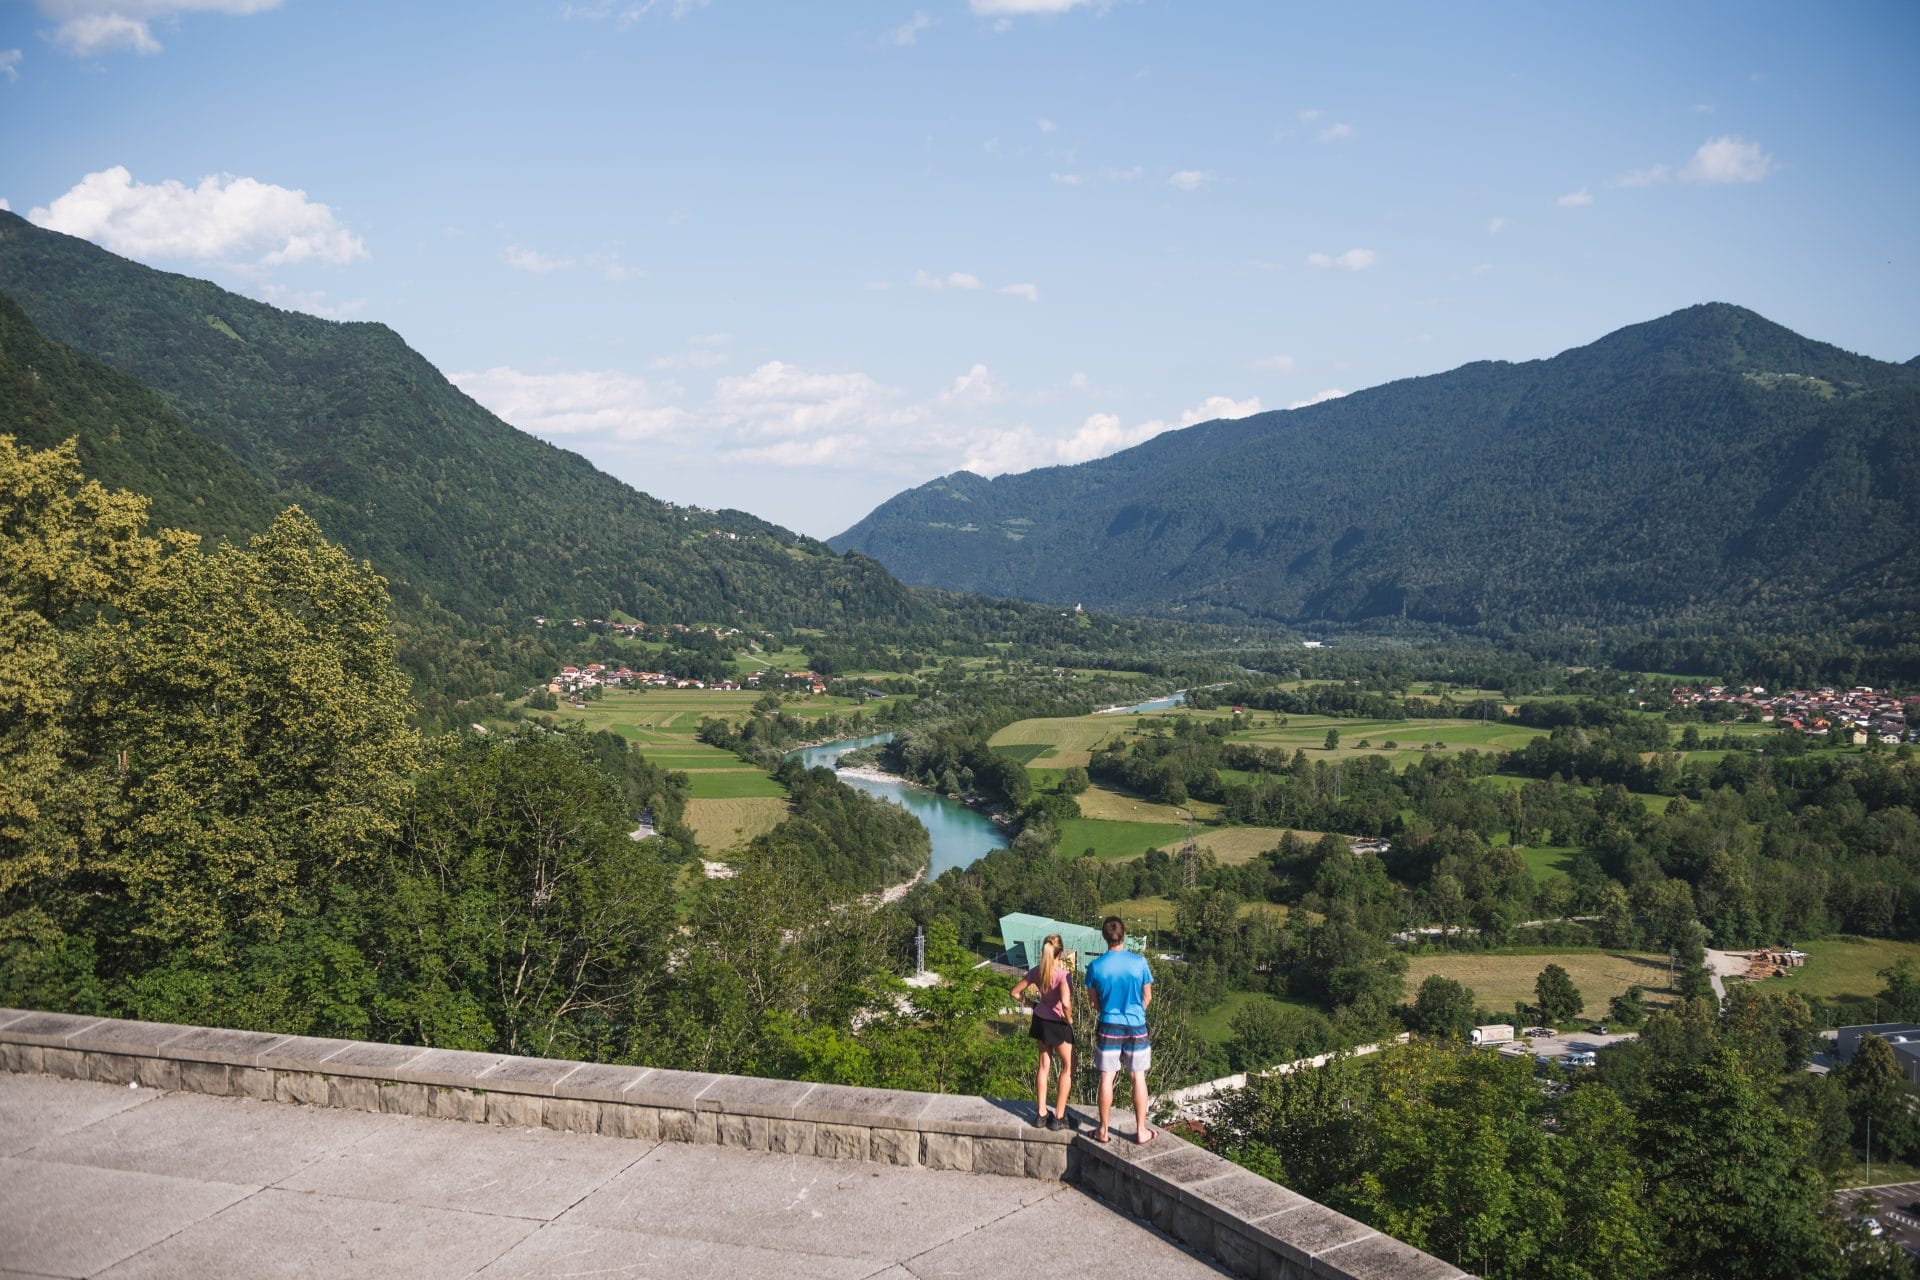 Views of Soča River from Kobarid ossuary